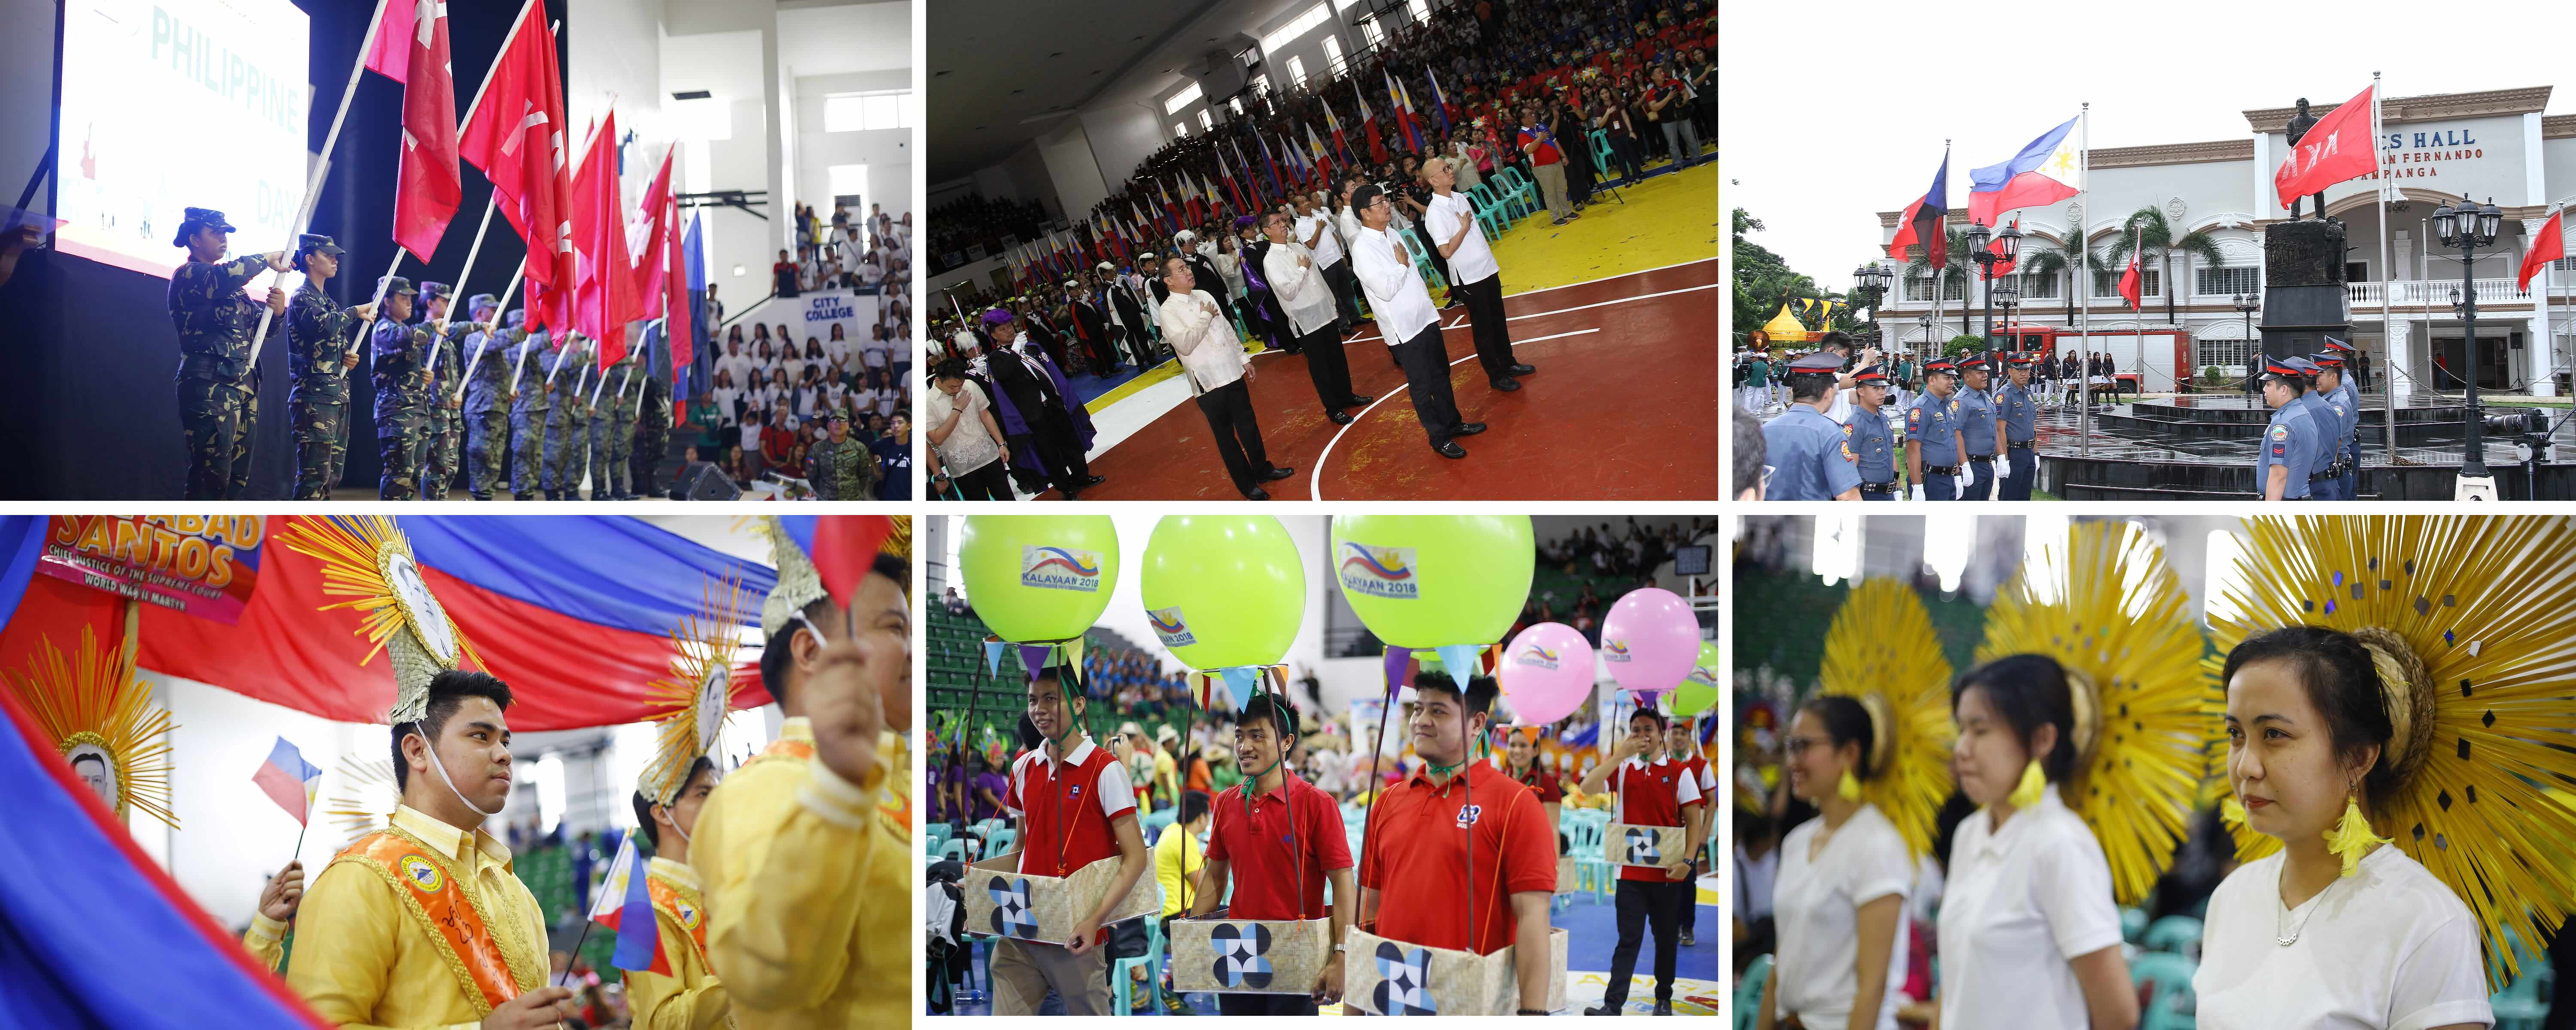 CSF joins nation in 120th Philippine Independence Day celebration